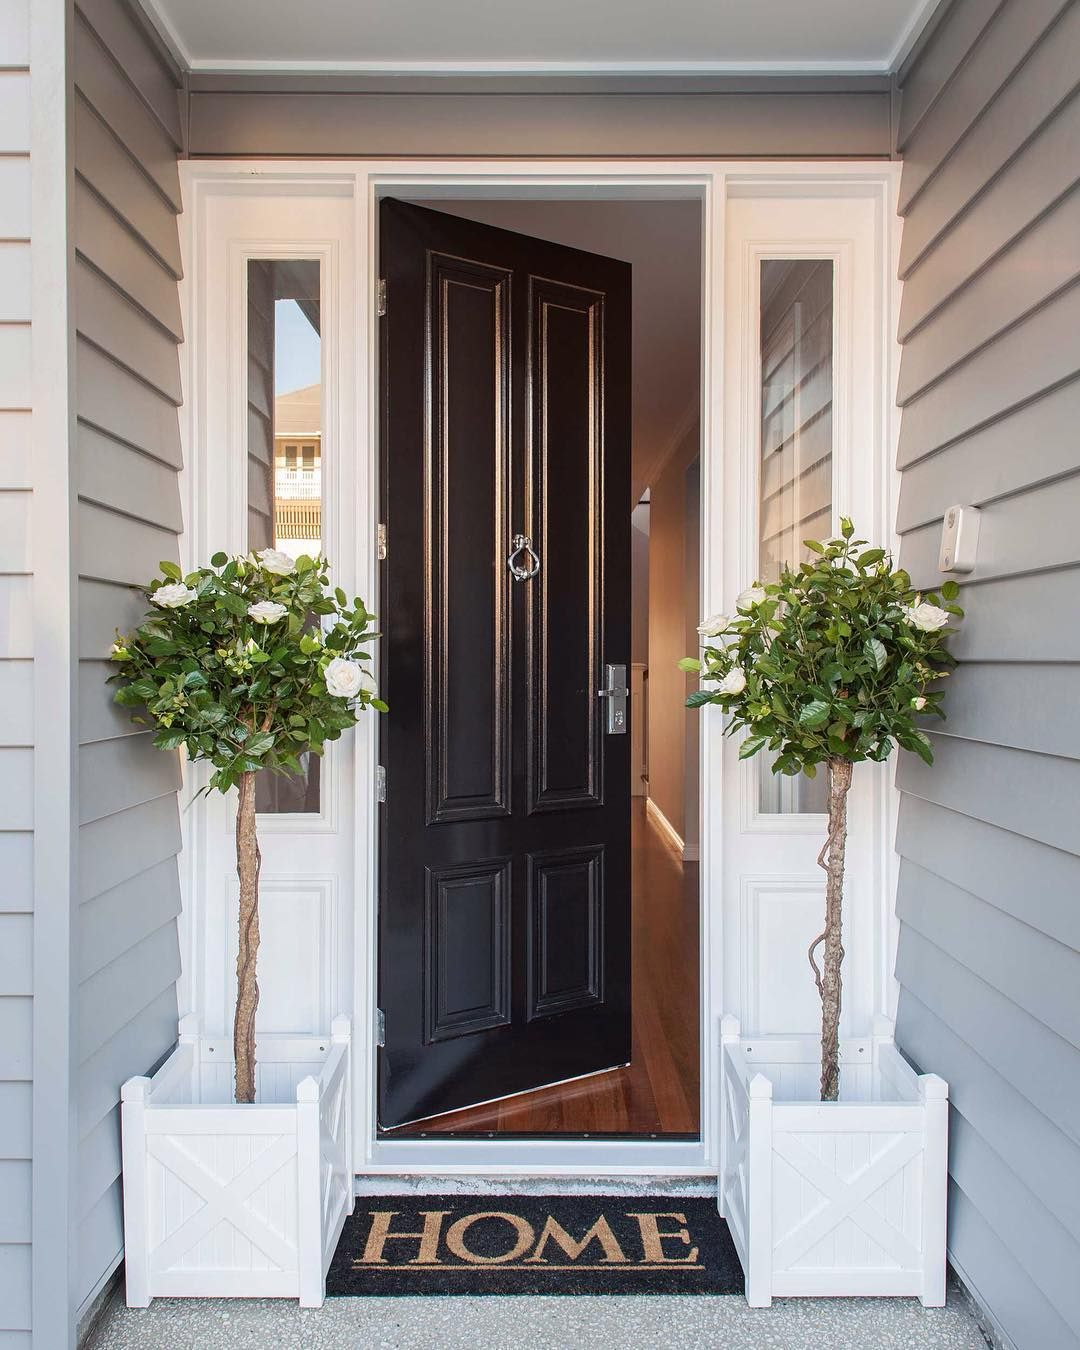 Home Interior Entrance Design Ideas: Welcome Home To This Classic Hamptons Style Front Entrance